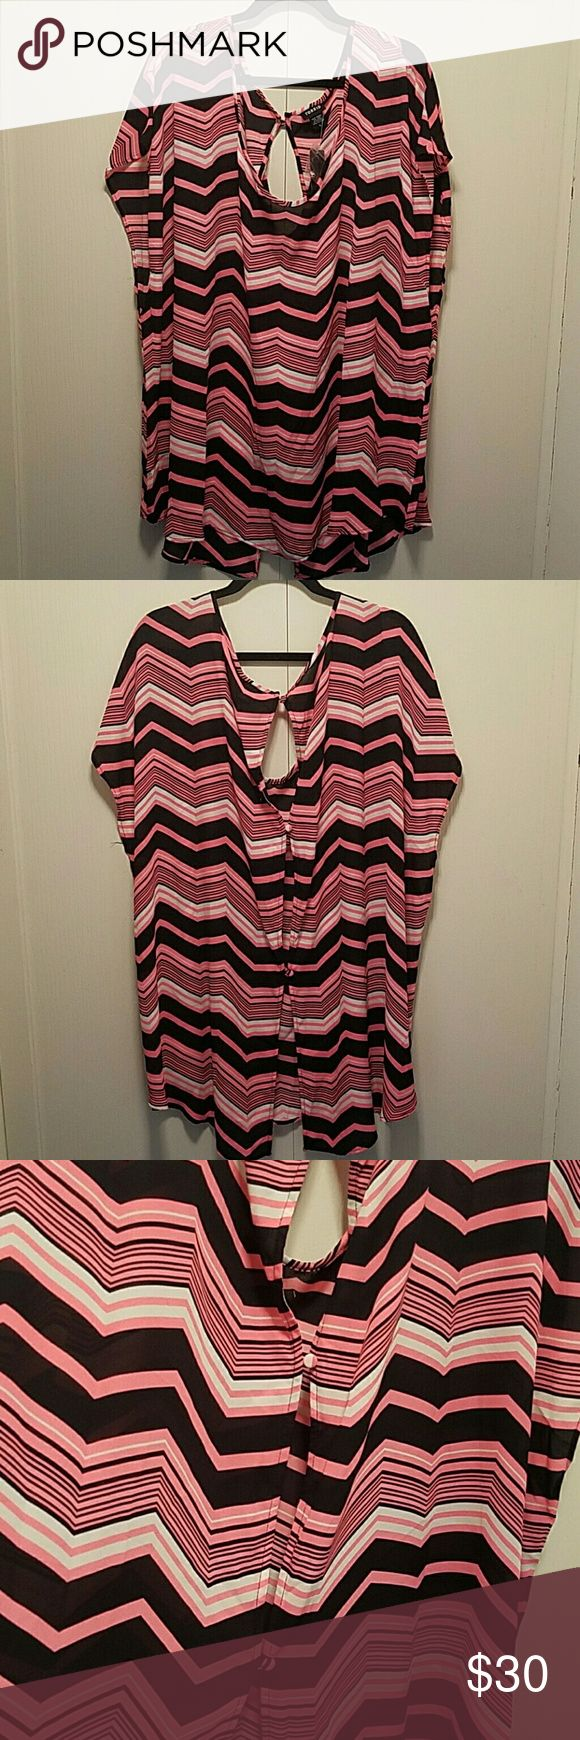 🆕 Bright Pink and Black Chevron Top 3 button split back top. A cami can be worn underneath. Torrid Tops